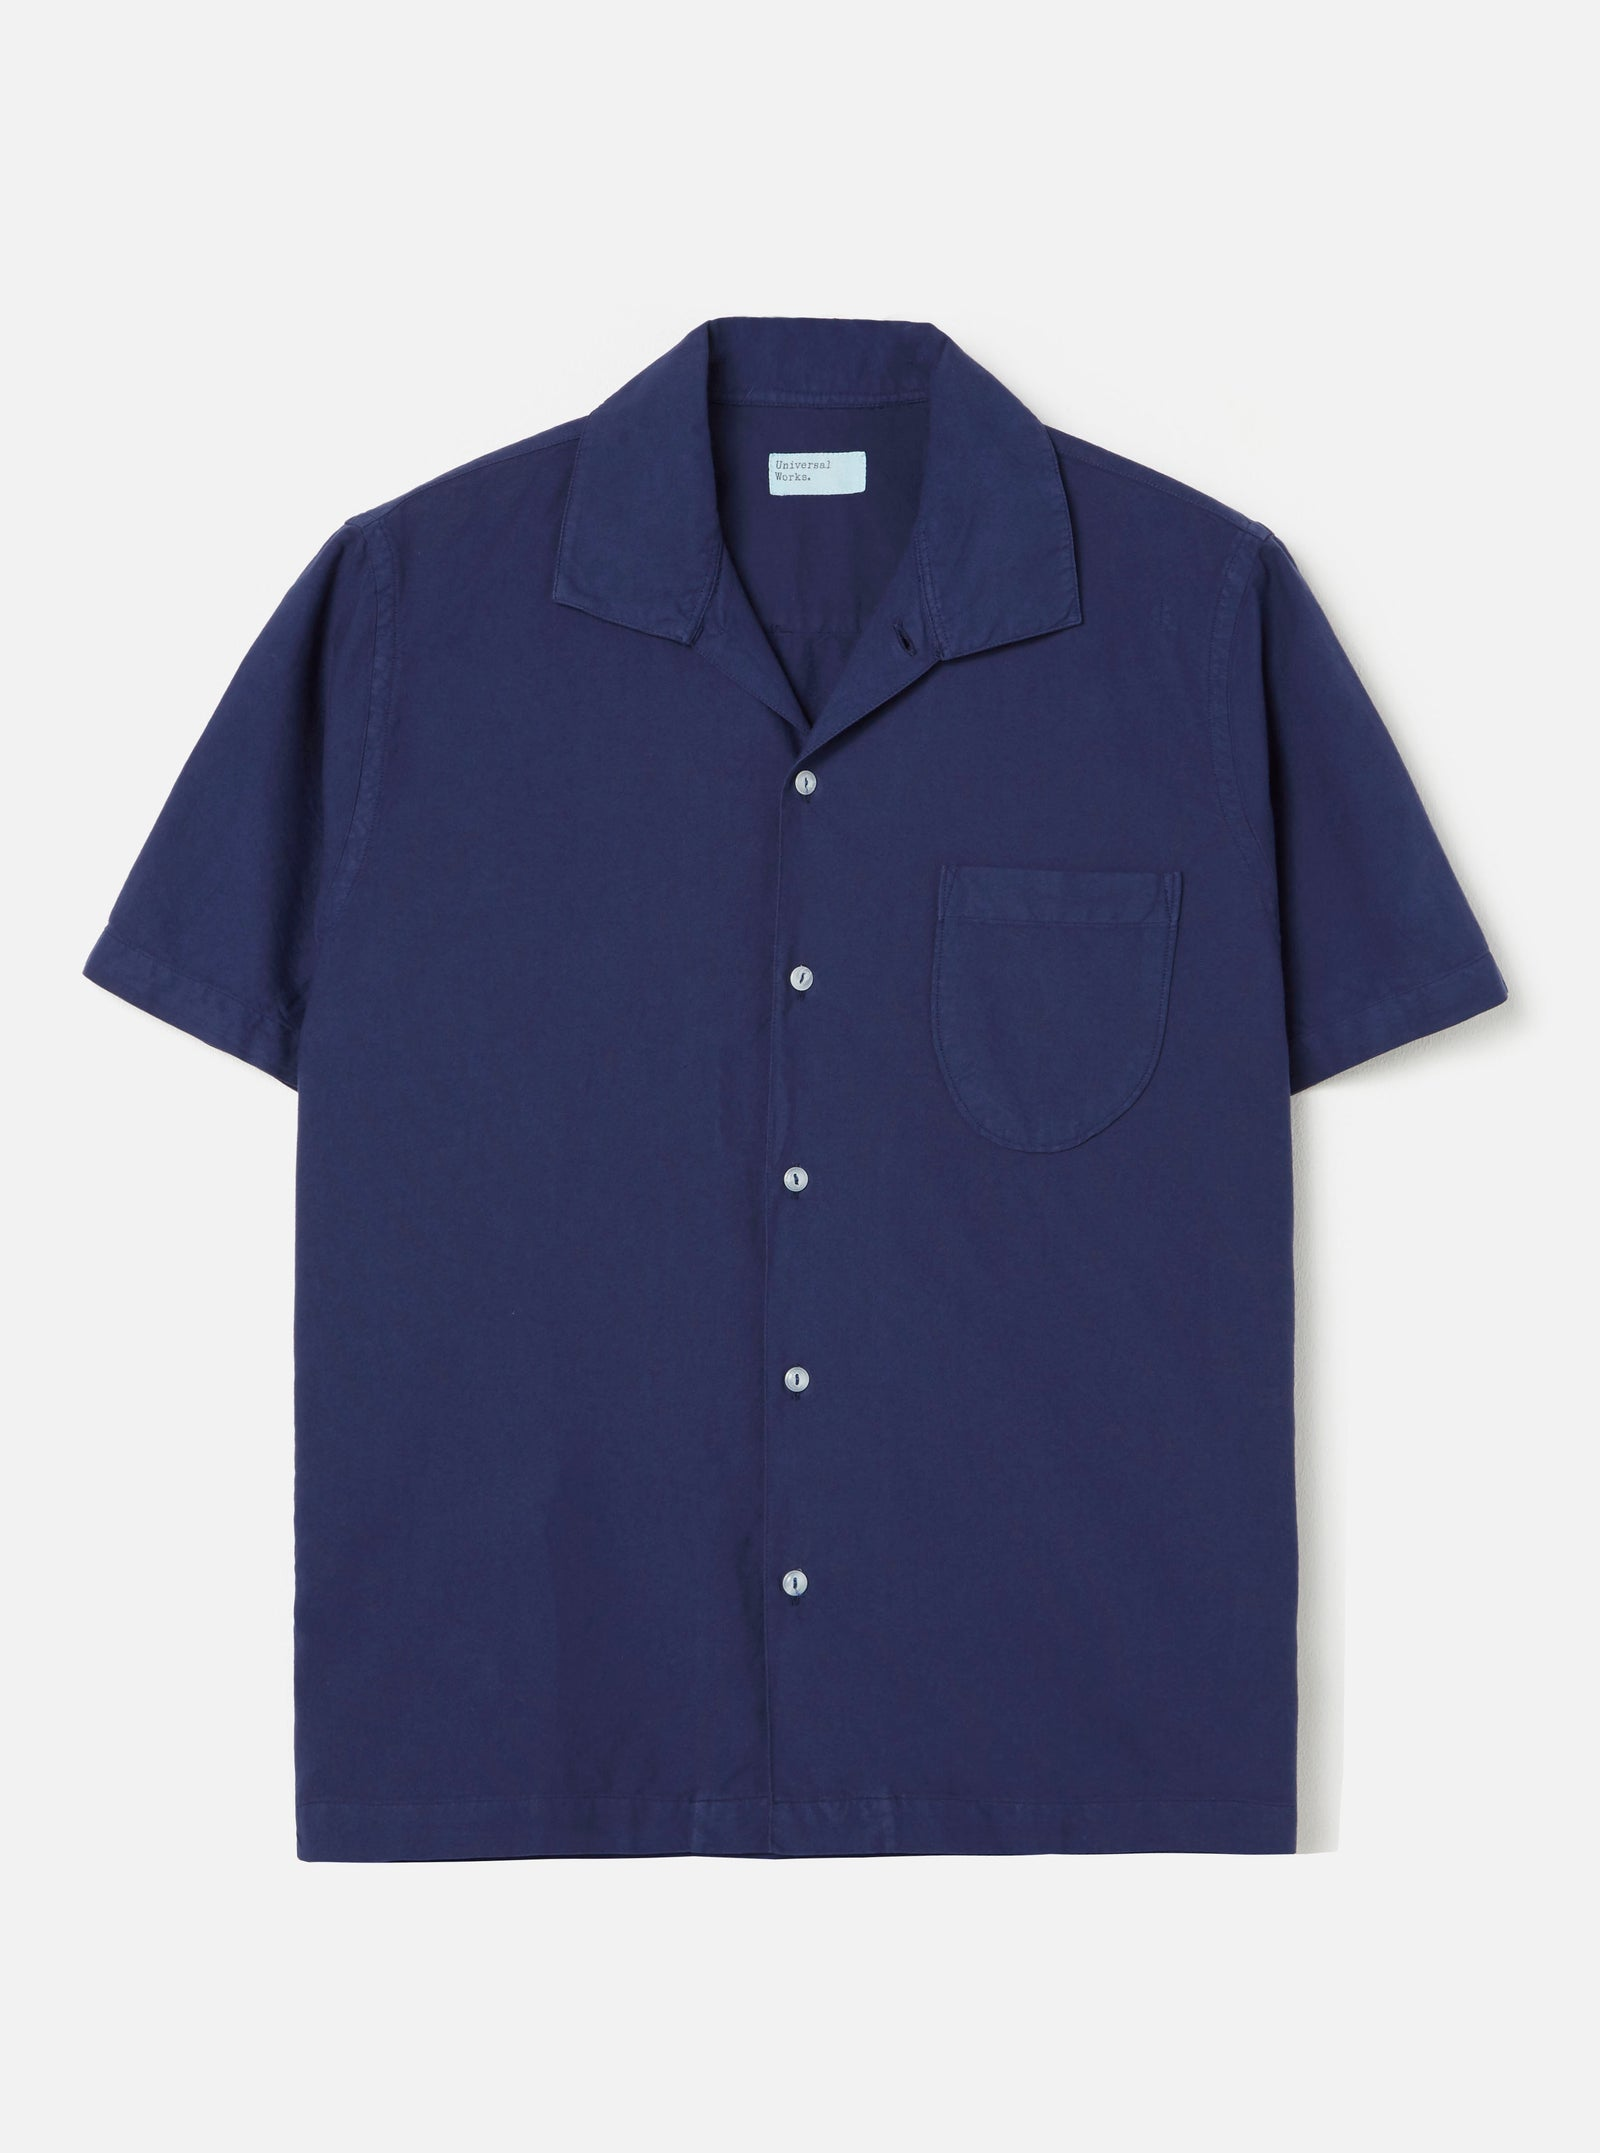 Universal Works Open Collar Shirt in Blueprint Oxford